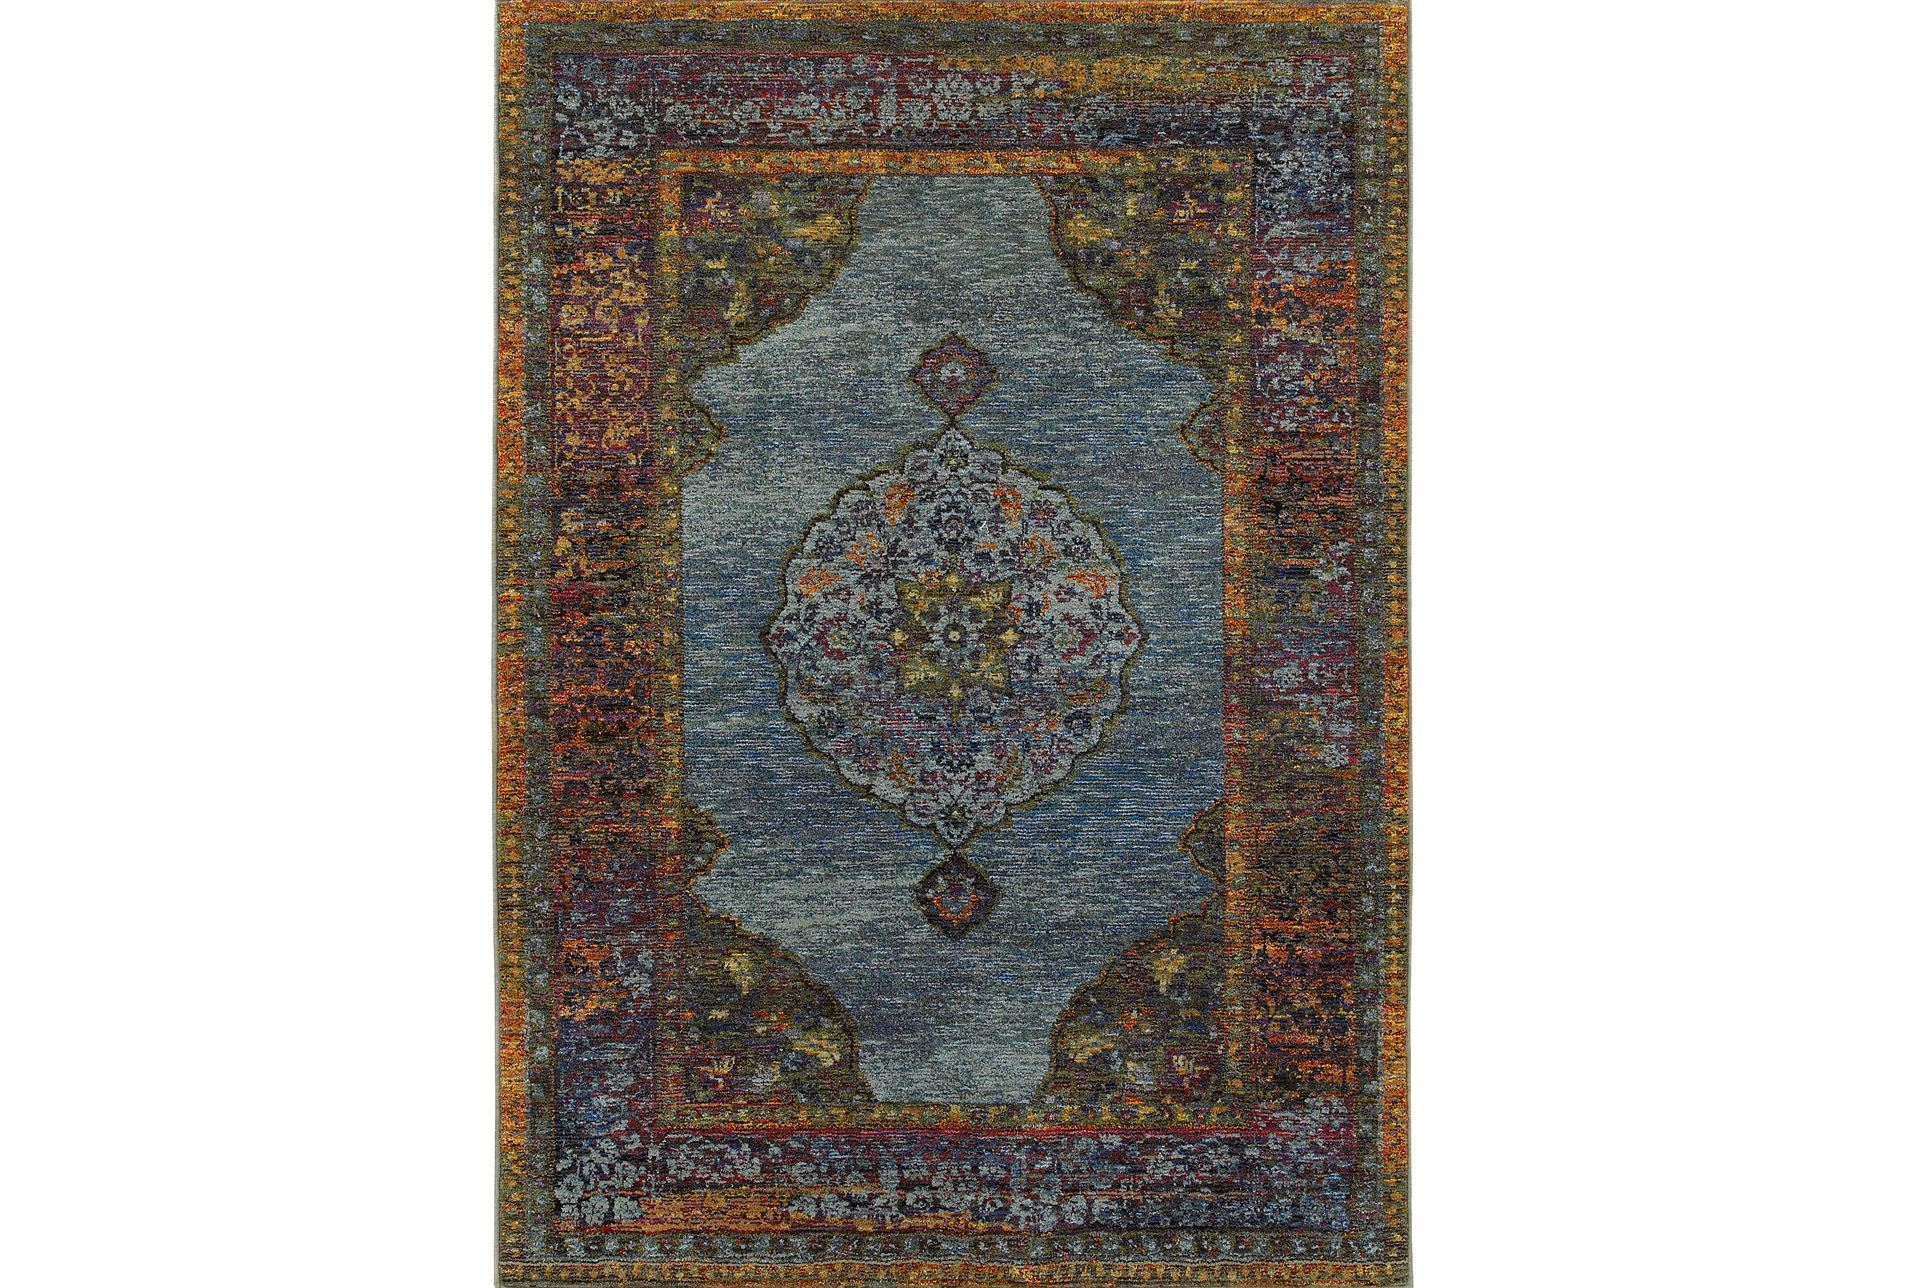 63x87 rug harriet moroccan blue living spaces for Living spaces rugs